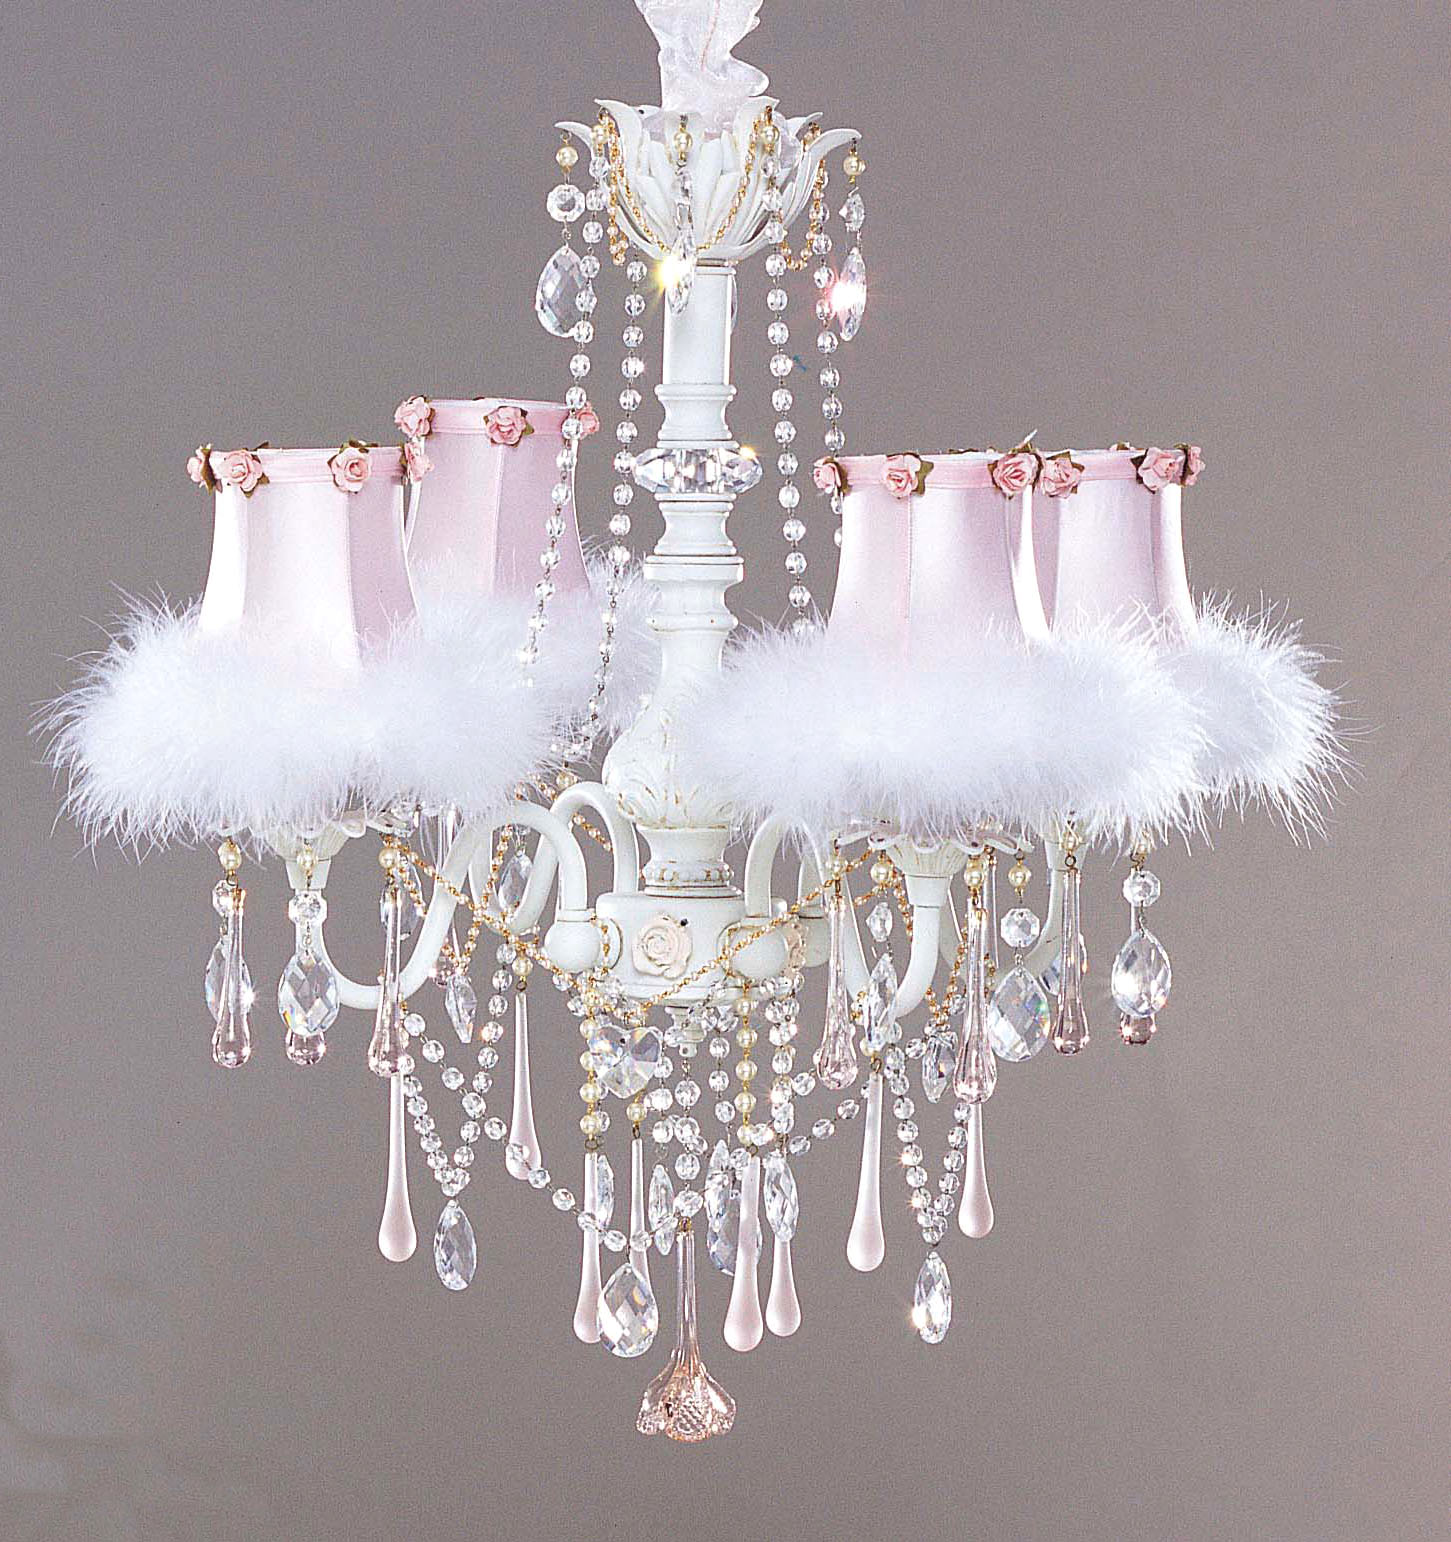 Fabulous Shabby Chic Room Chandelier for Girls 1451 x 1542 · 403 kB · jpeg